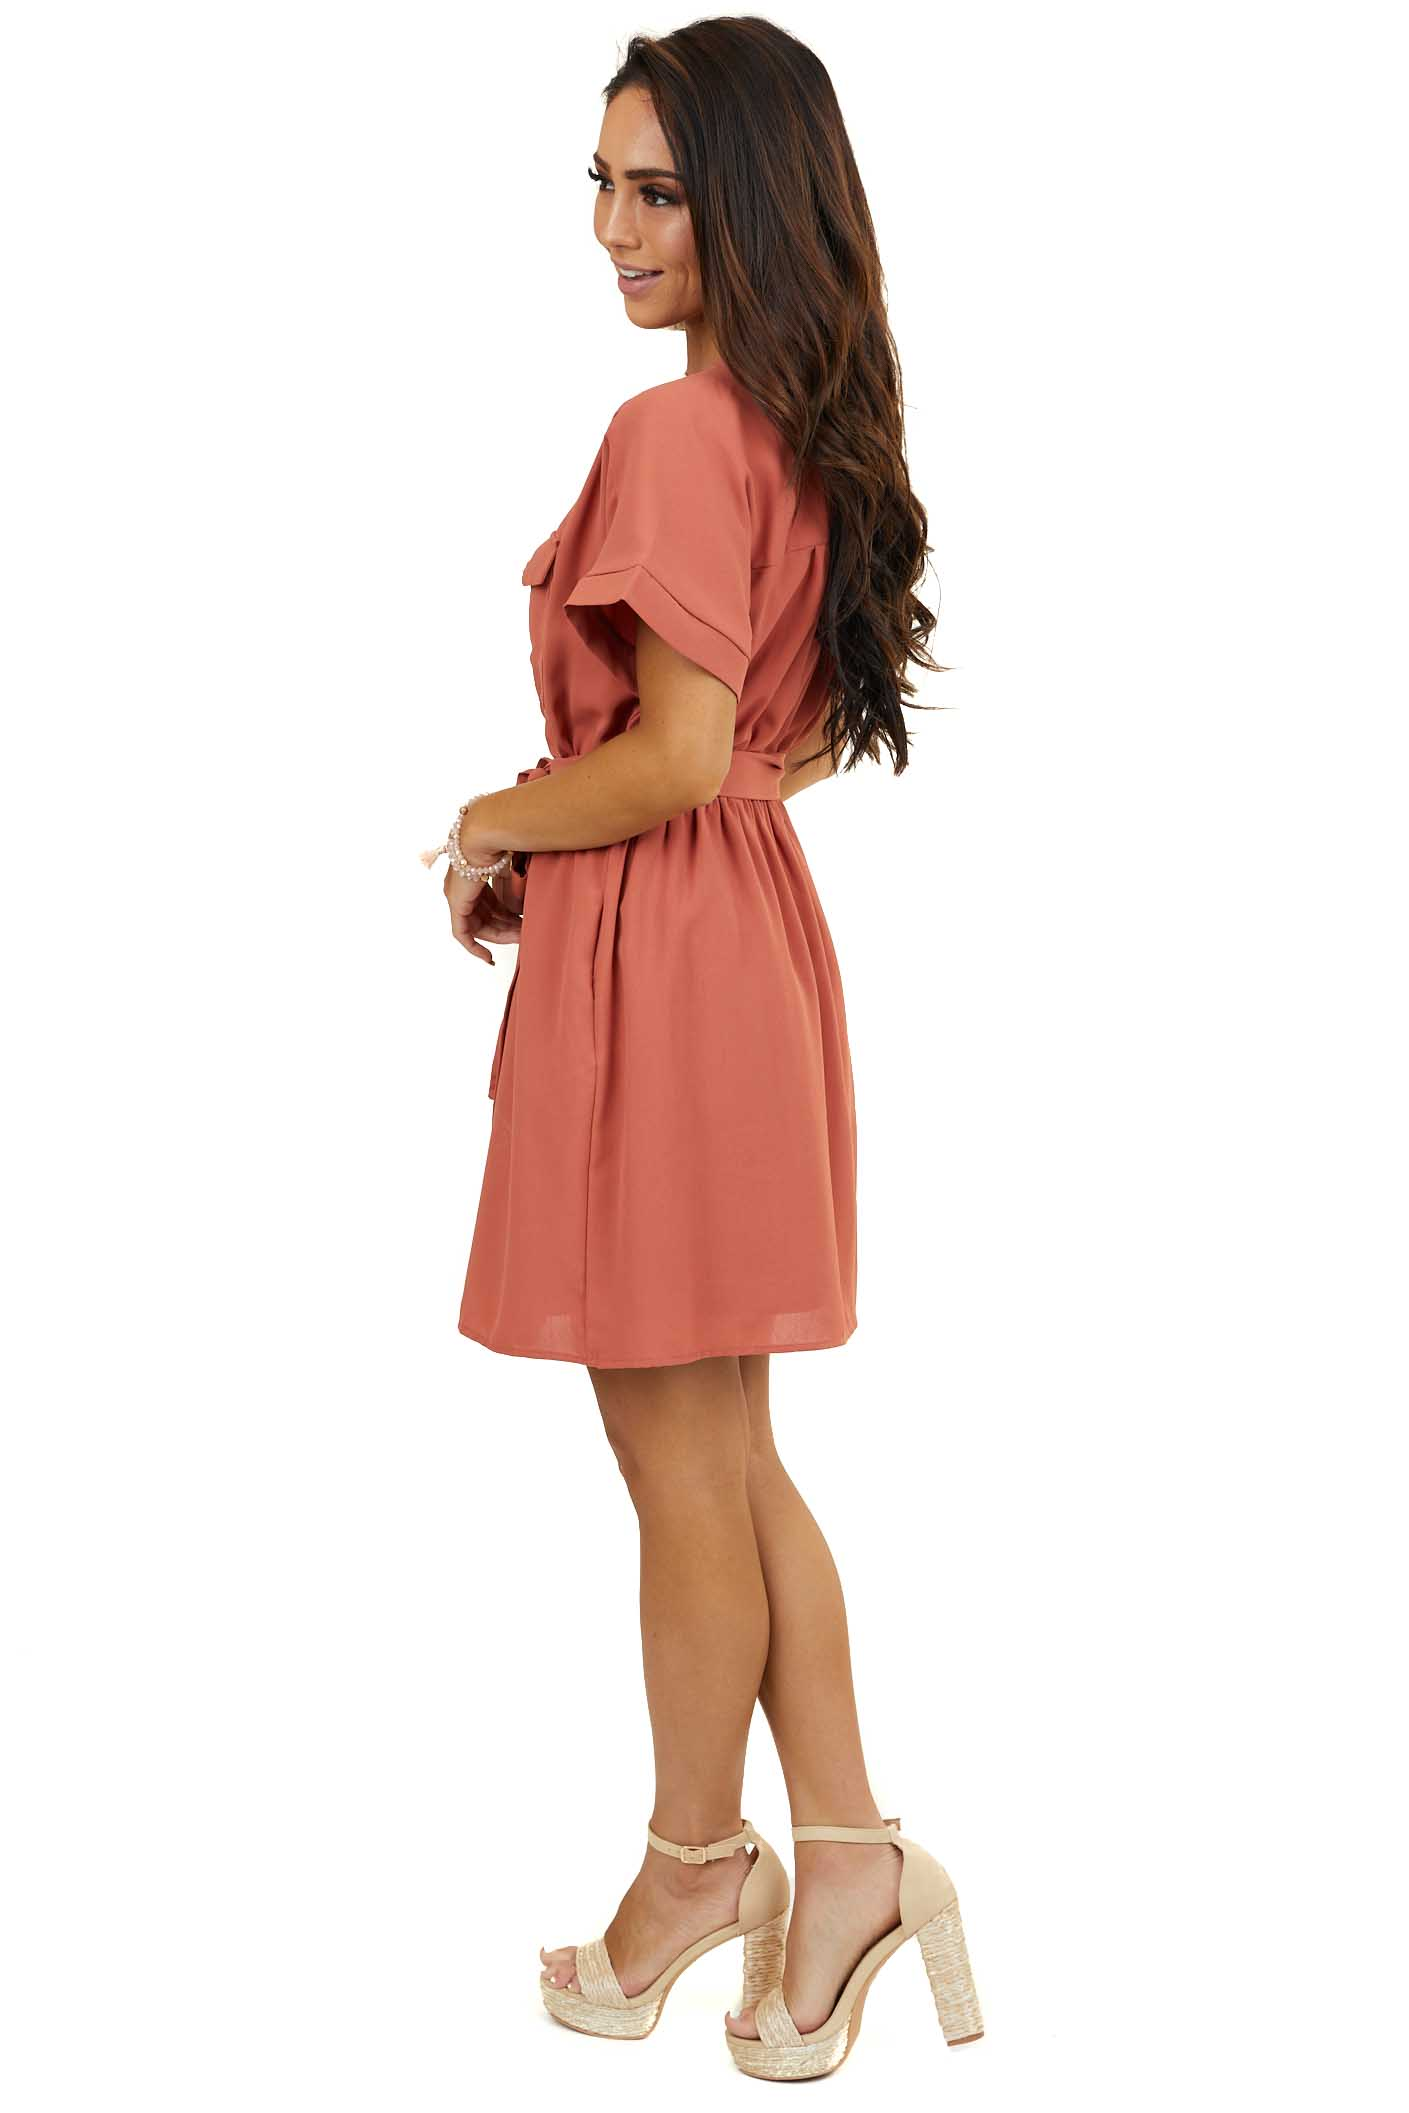 Terracotta Surplice Dress with Waist Tie and Pockets